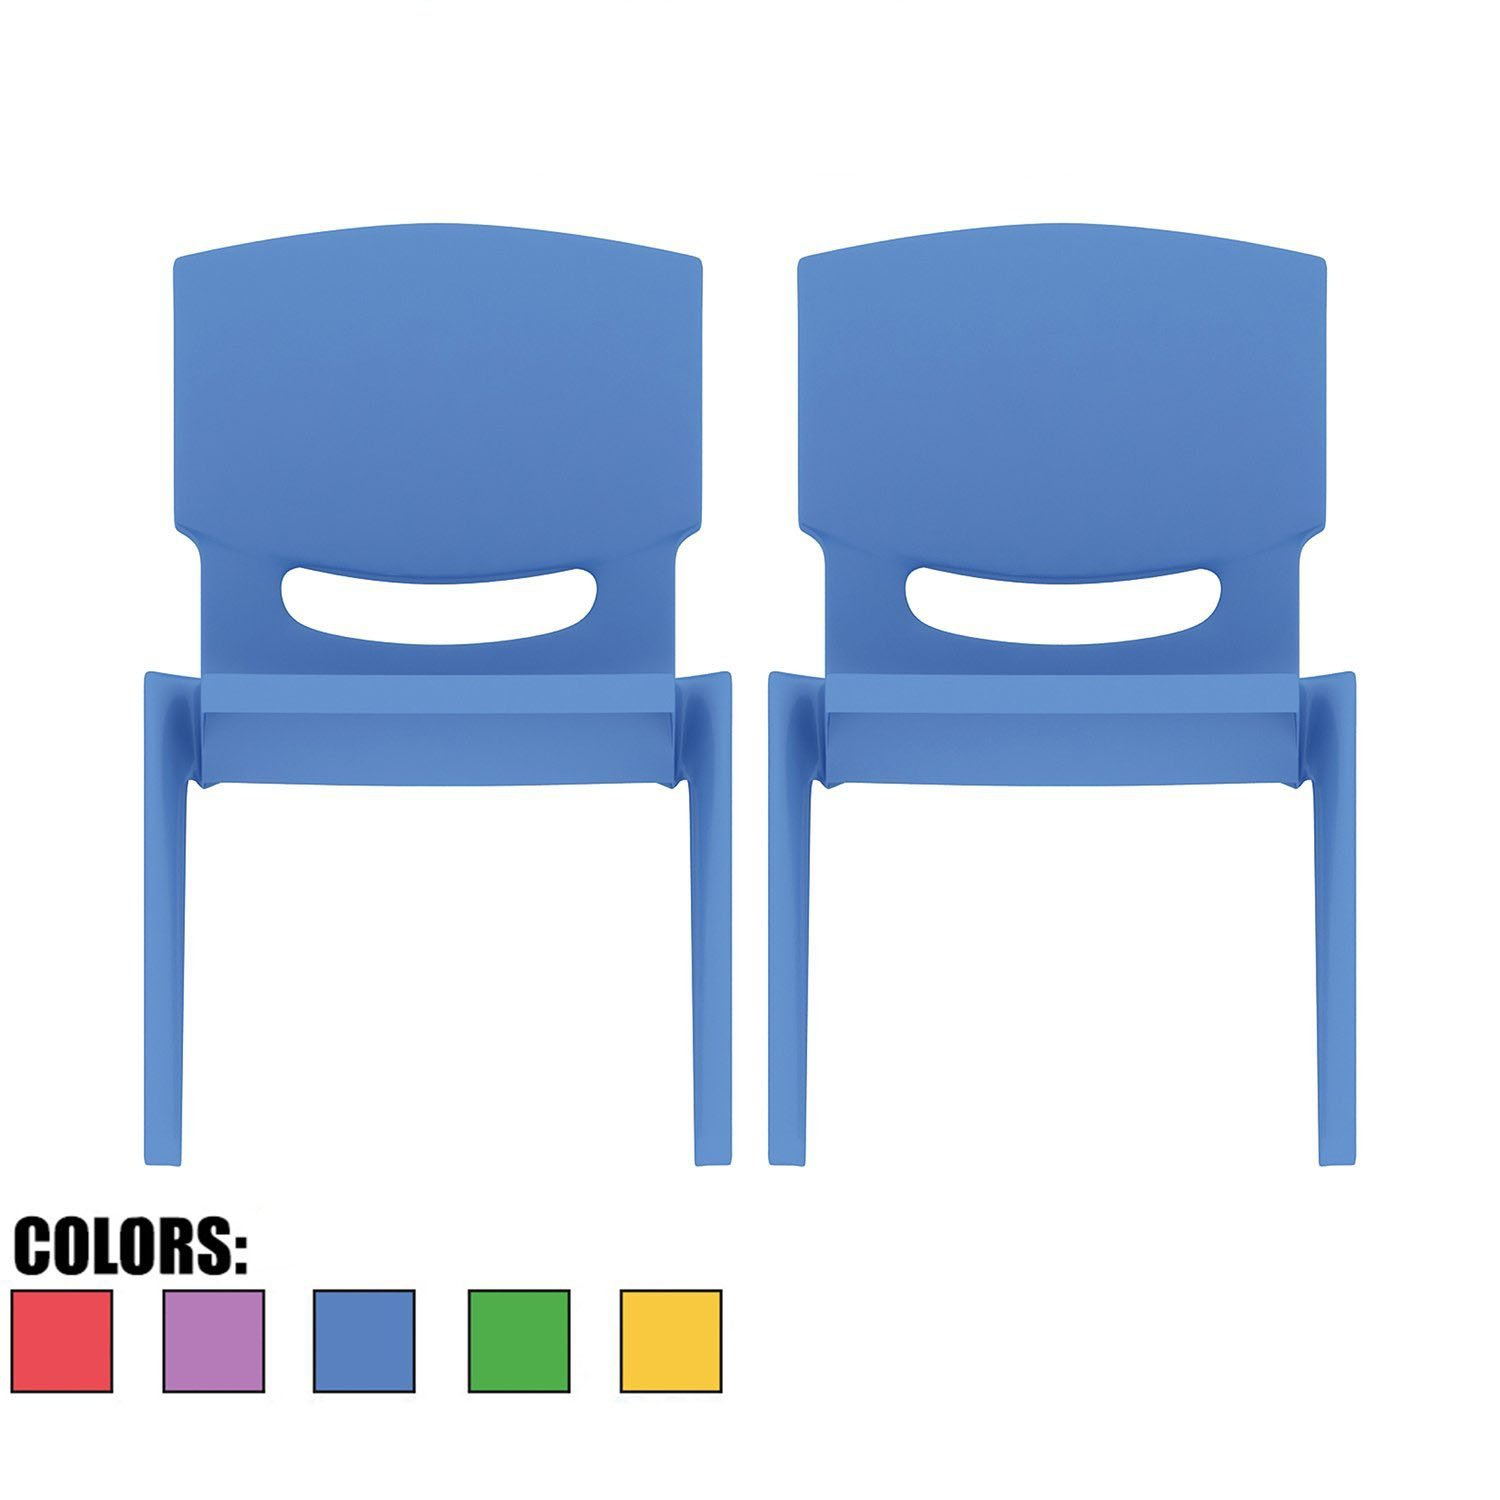 2xhome - Set of Two (2) - Blue - Kids Size Plastic Side Chair 10'' Seat Height Blue Childs Chair Childrens Room School Chairs No Arm Arms Armless Molded Plastic Seat Stackable